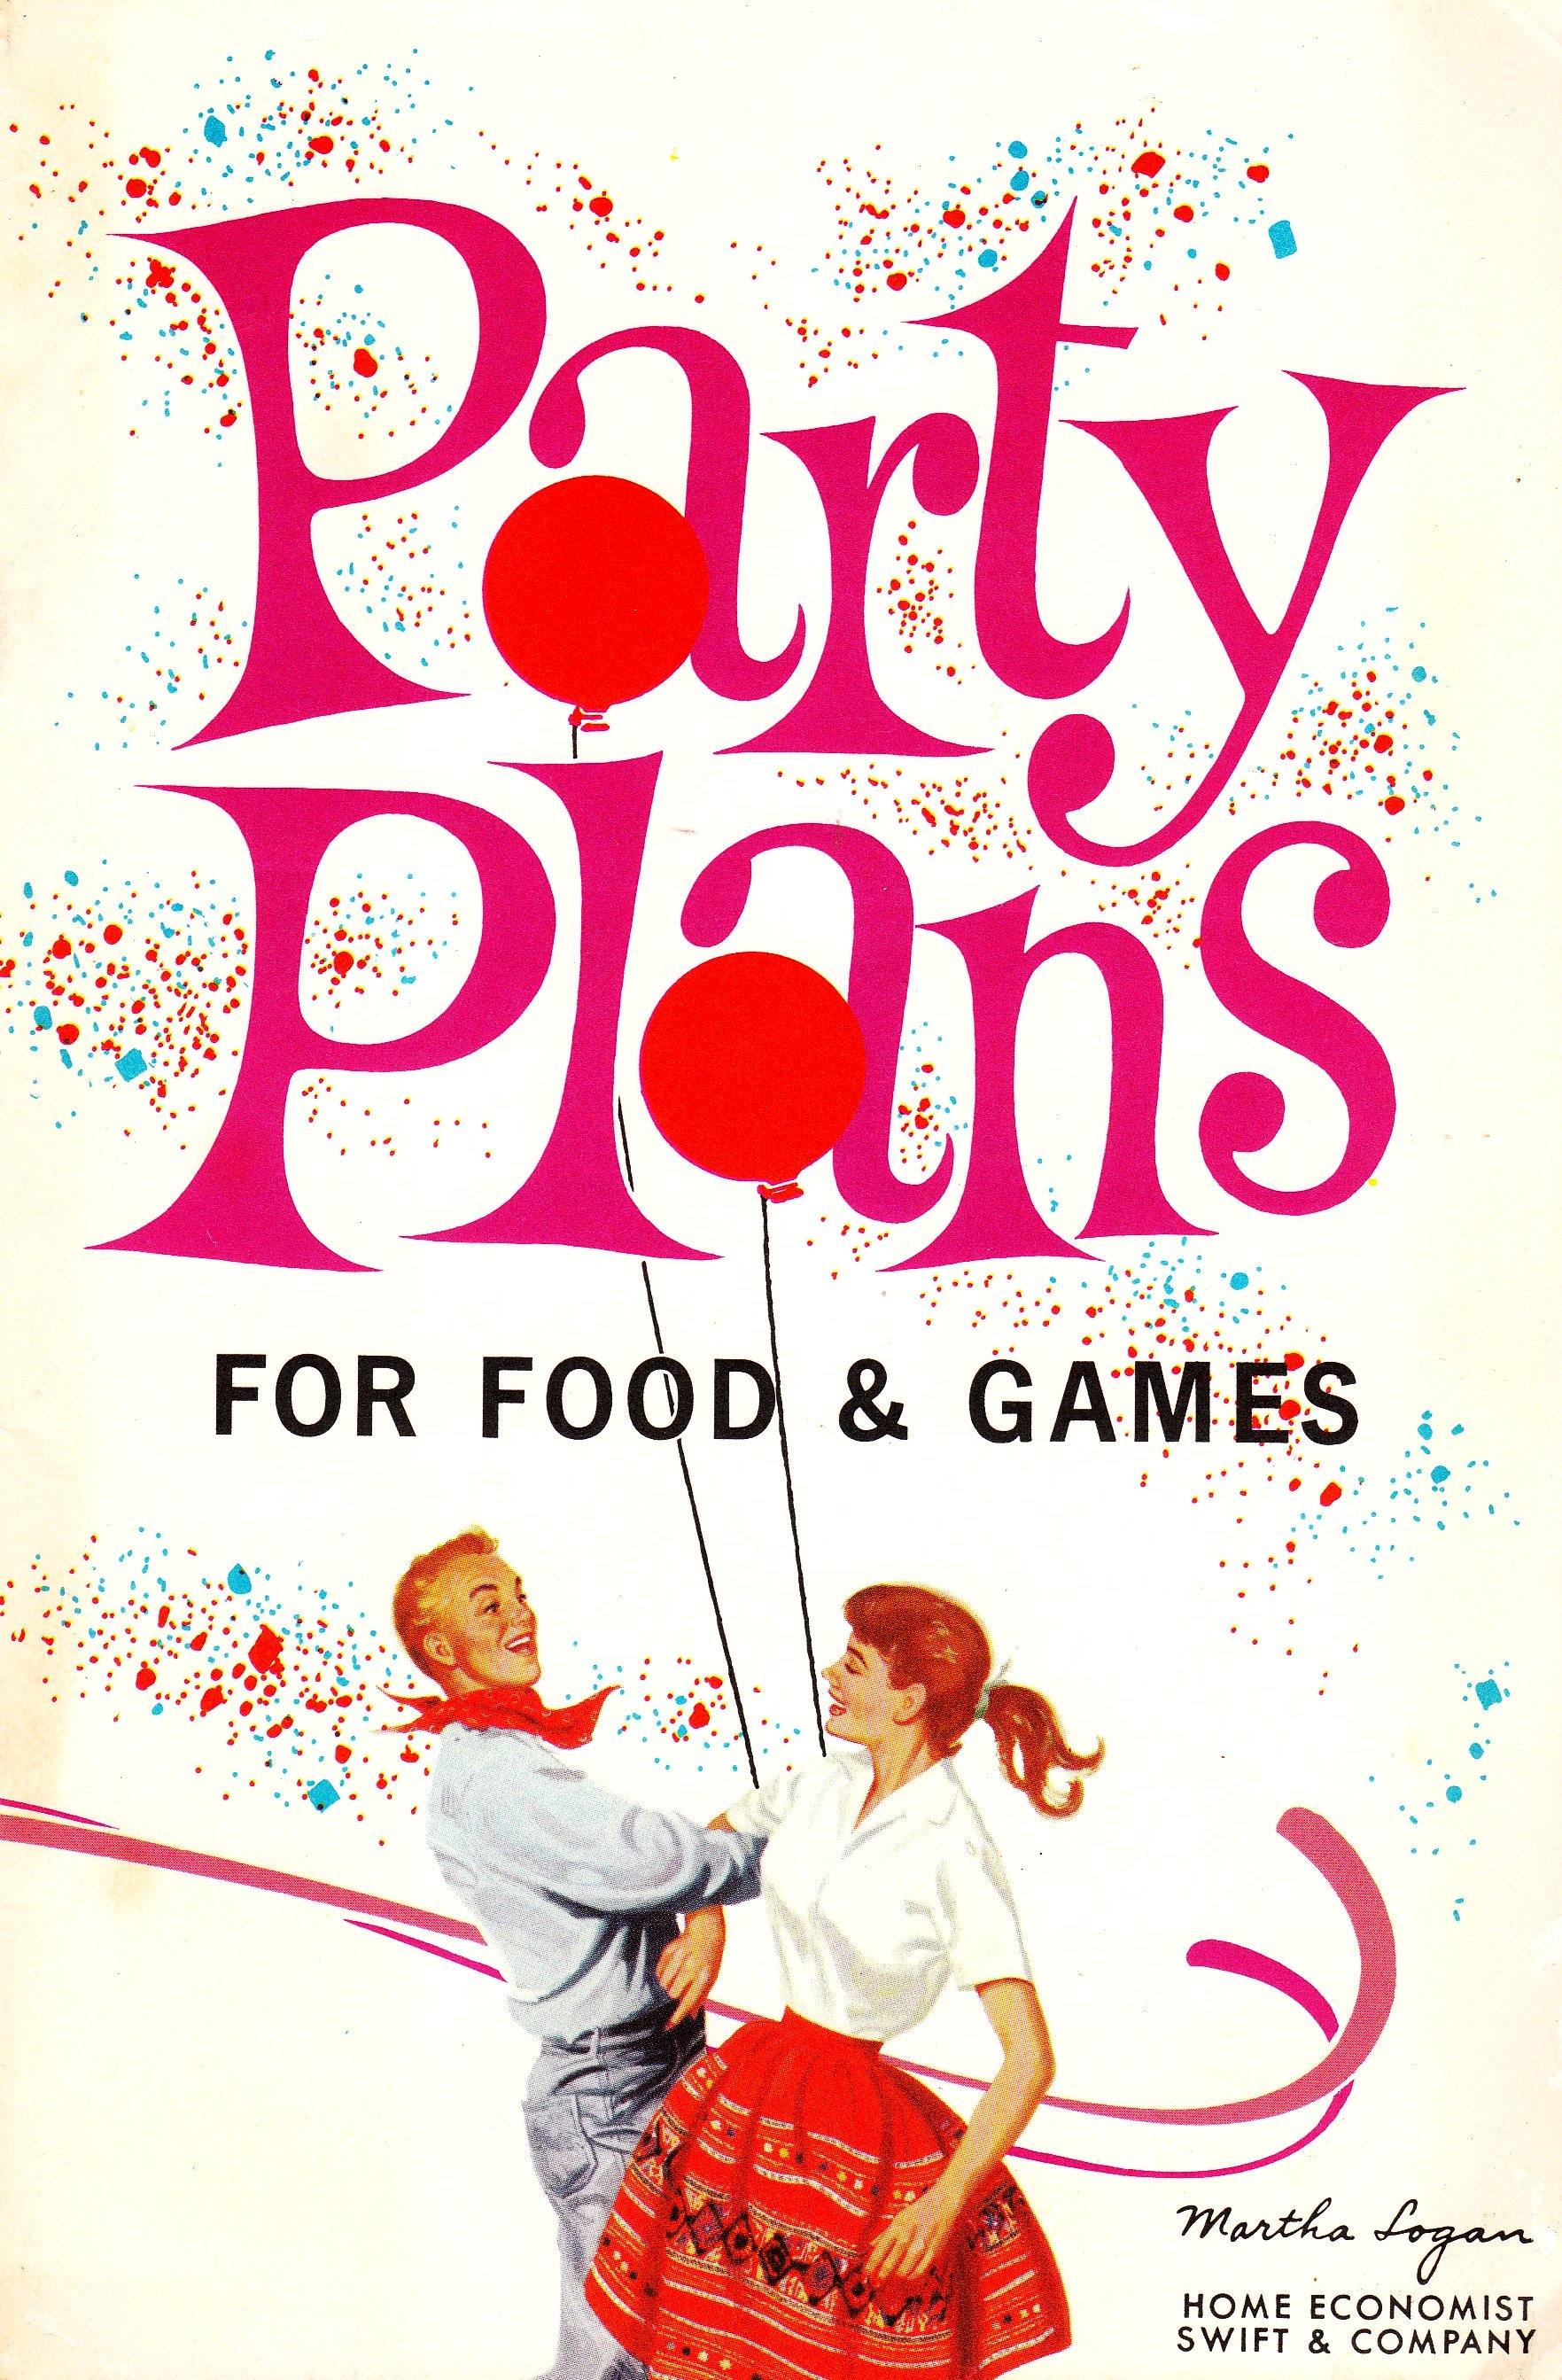 Swift and Company - 'Party Plans for Food and Games' - 1966 - Author: Martha Logan, Home Economist